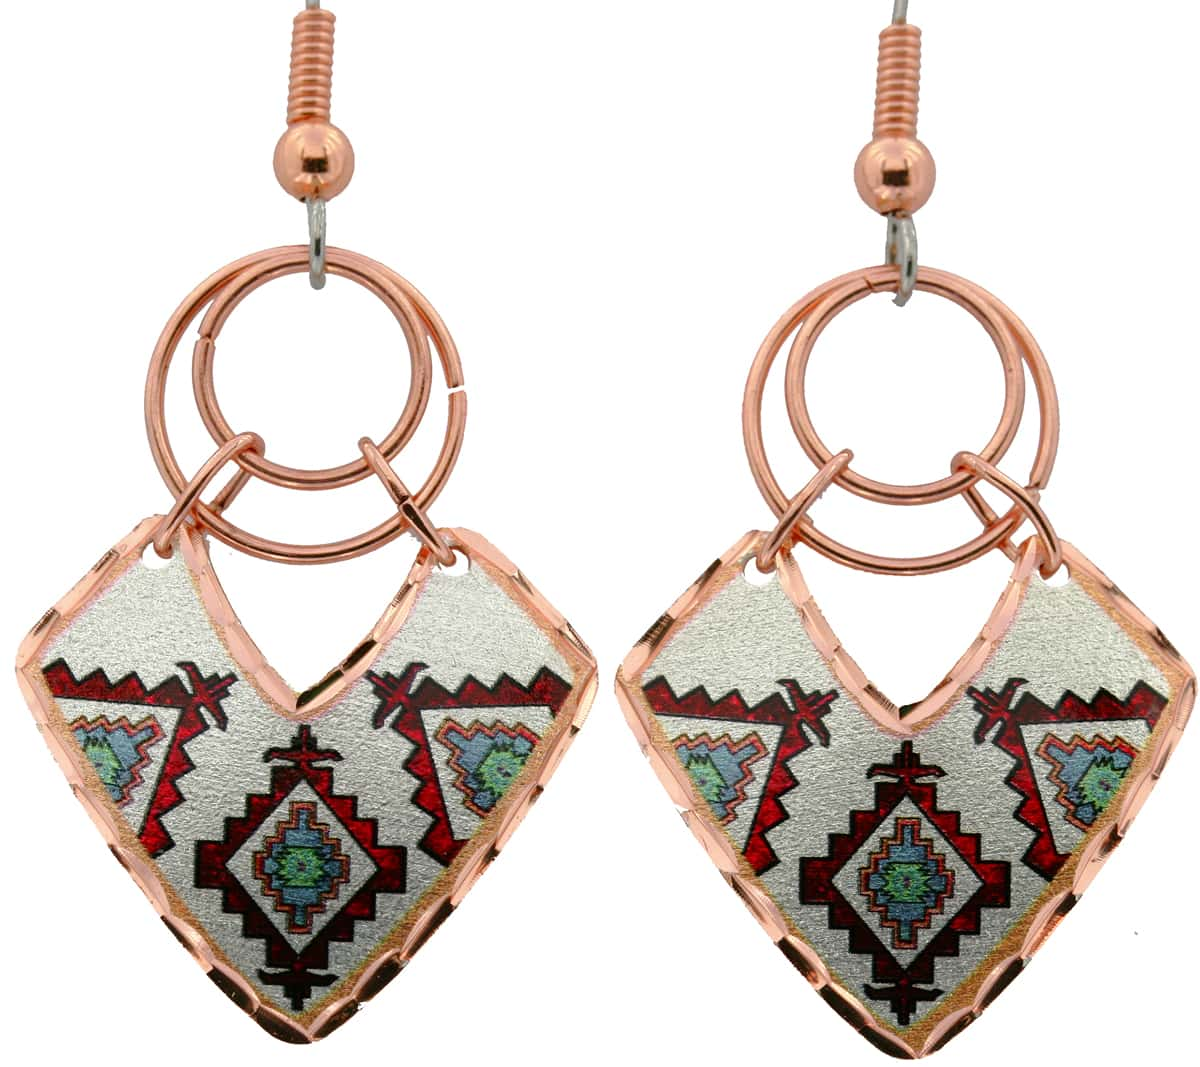 Native Earrings Crafted by Hand Using Copper and Copper Wires